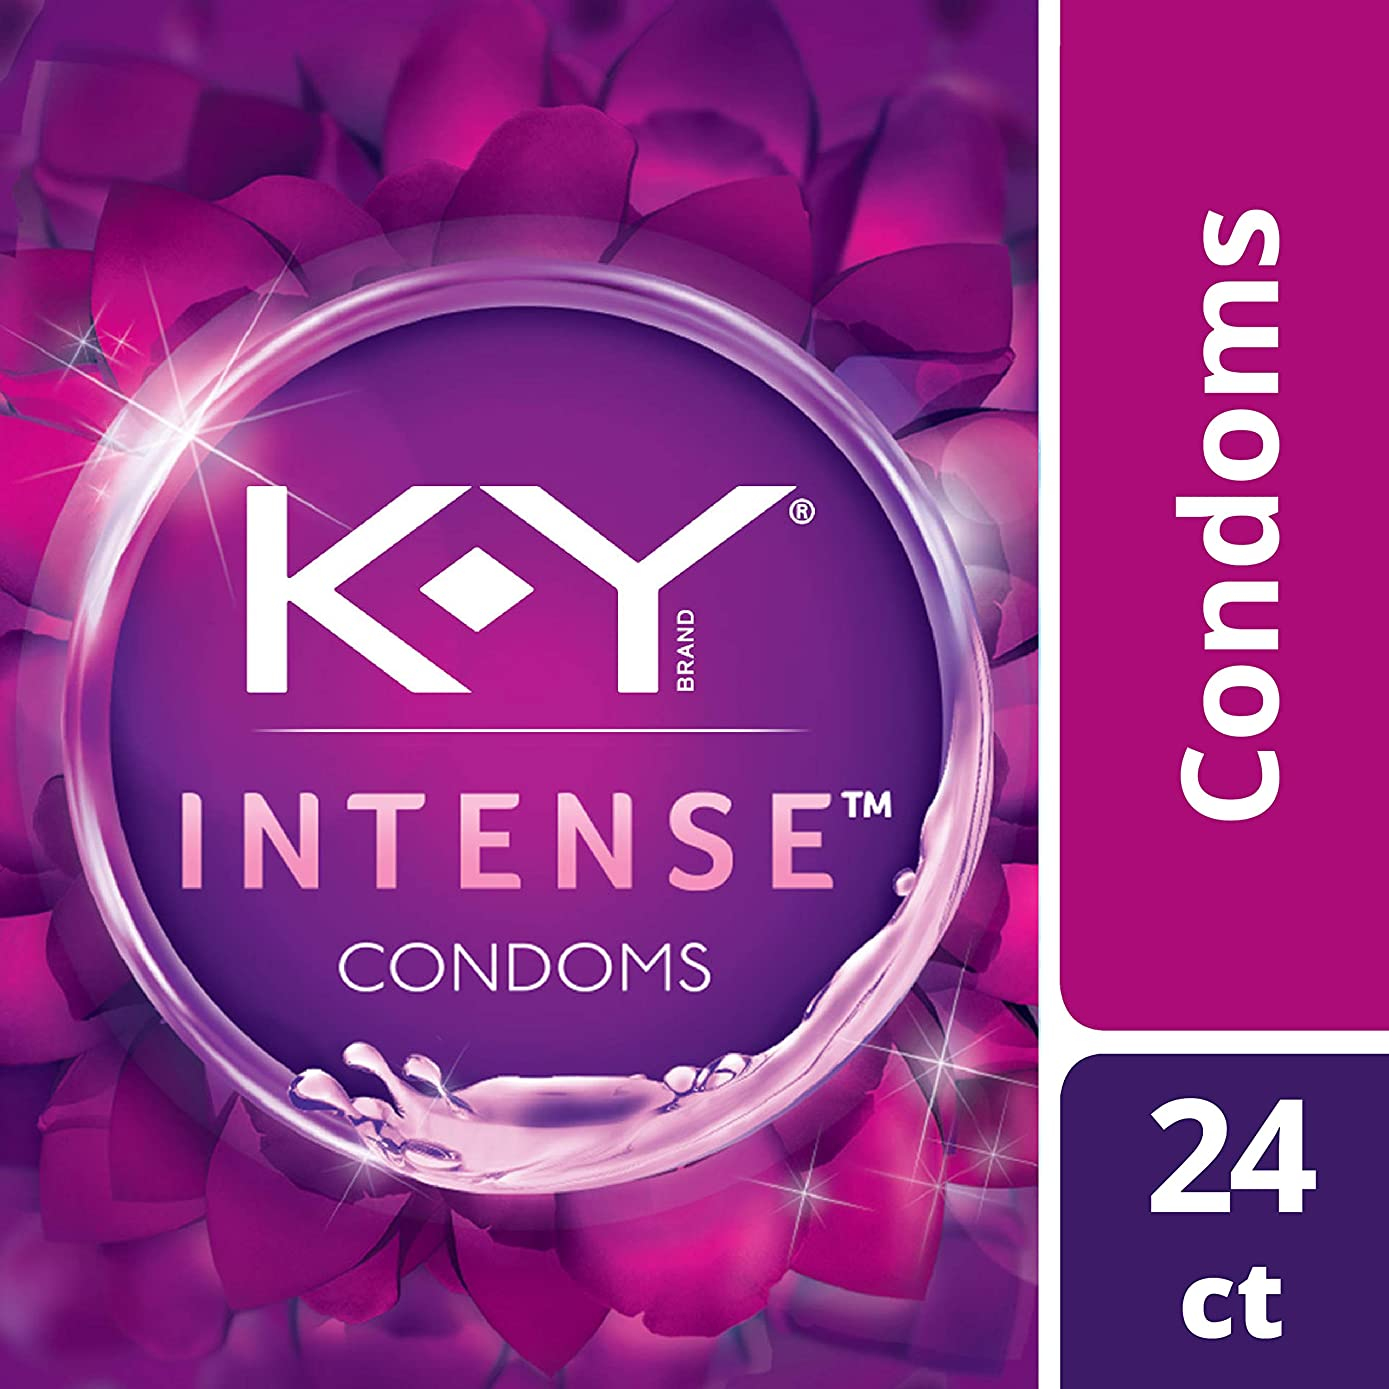 Condoms, K-Y Me & You Intense Latex Ultra Thin Condoms. Intensifying Sensation for Her & Natural Fit for Him. 24Count. Natural Rubber Latex Condoms with Water-Based Lubricant. HSA Eligible